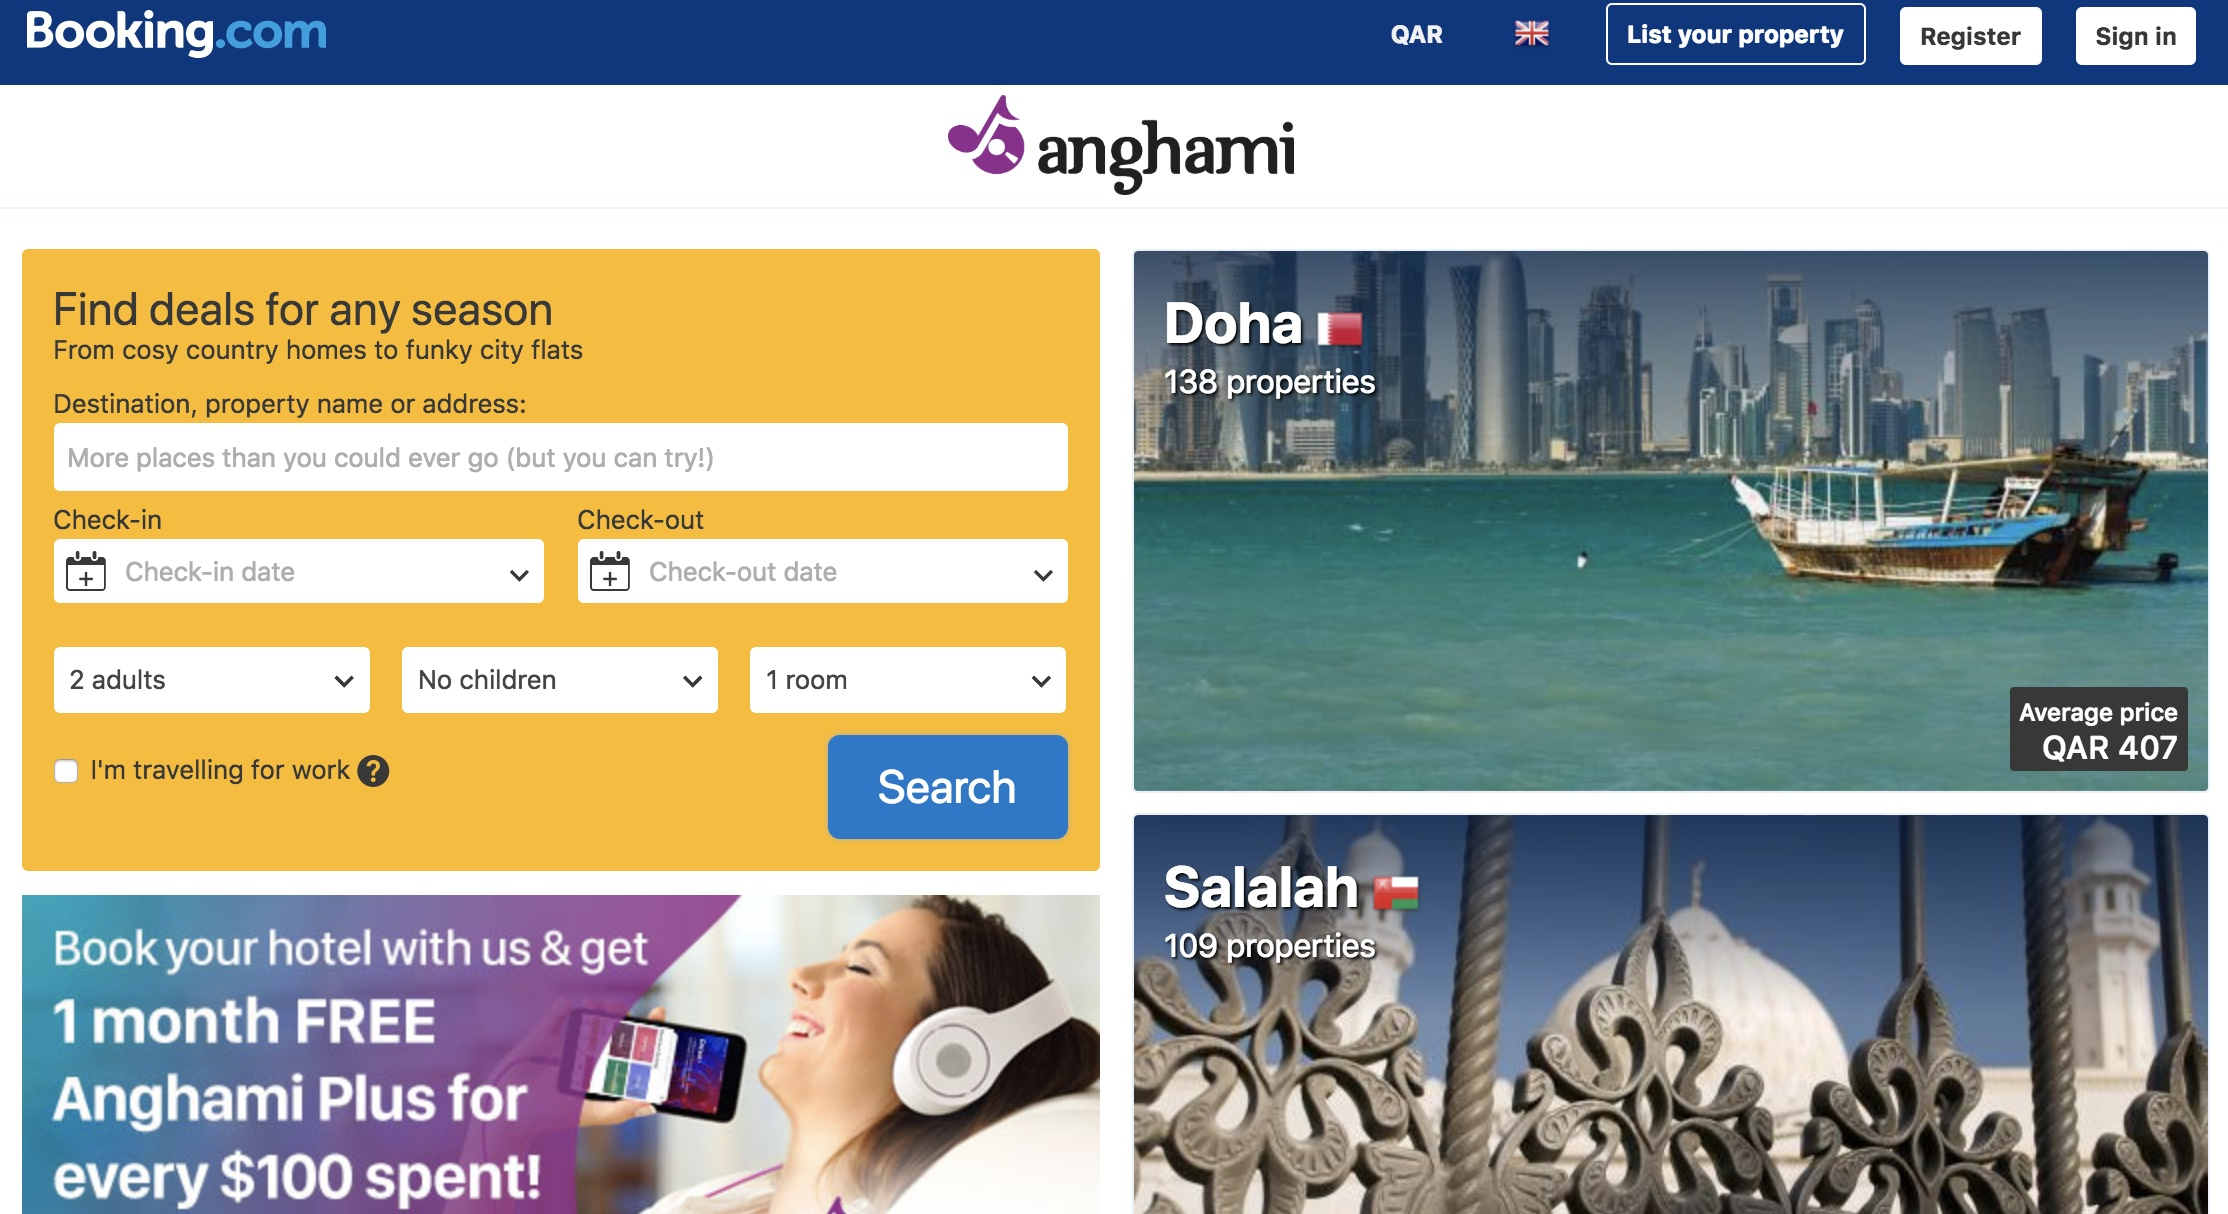 Earn Anghami Plus months for every $100 spent on Booking.com